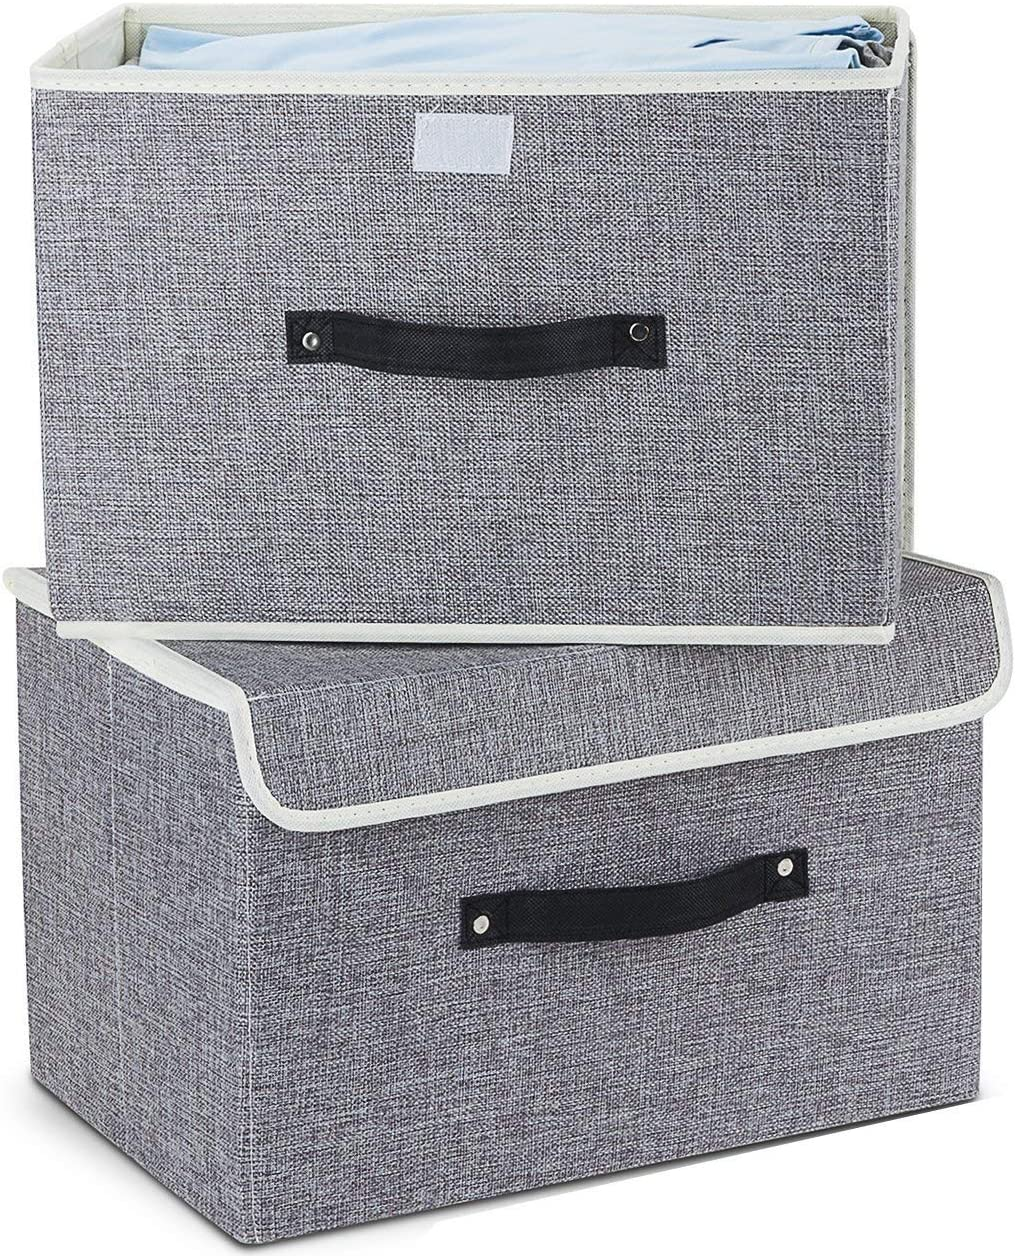 Storage Boxes Set of 2,EZ GENERATION Cotton Fabric Foldable Storage Bins Baskets with Lids and Handles Container Clothes Blanket for Books Toys DVDs Art and Craft Washing Laundry Organiser(Light Grey)